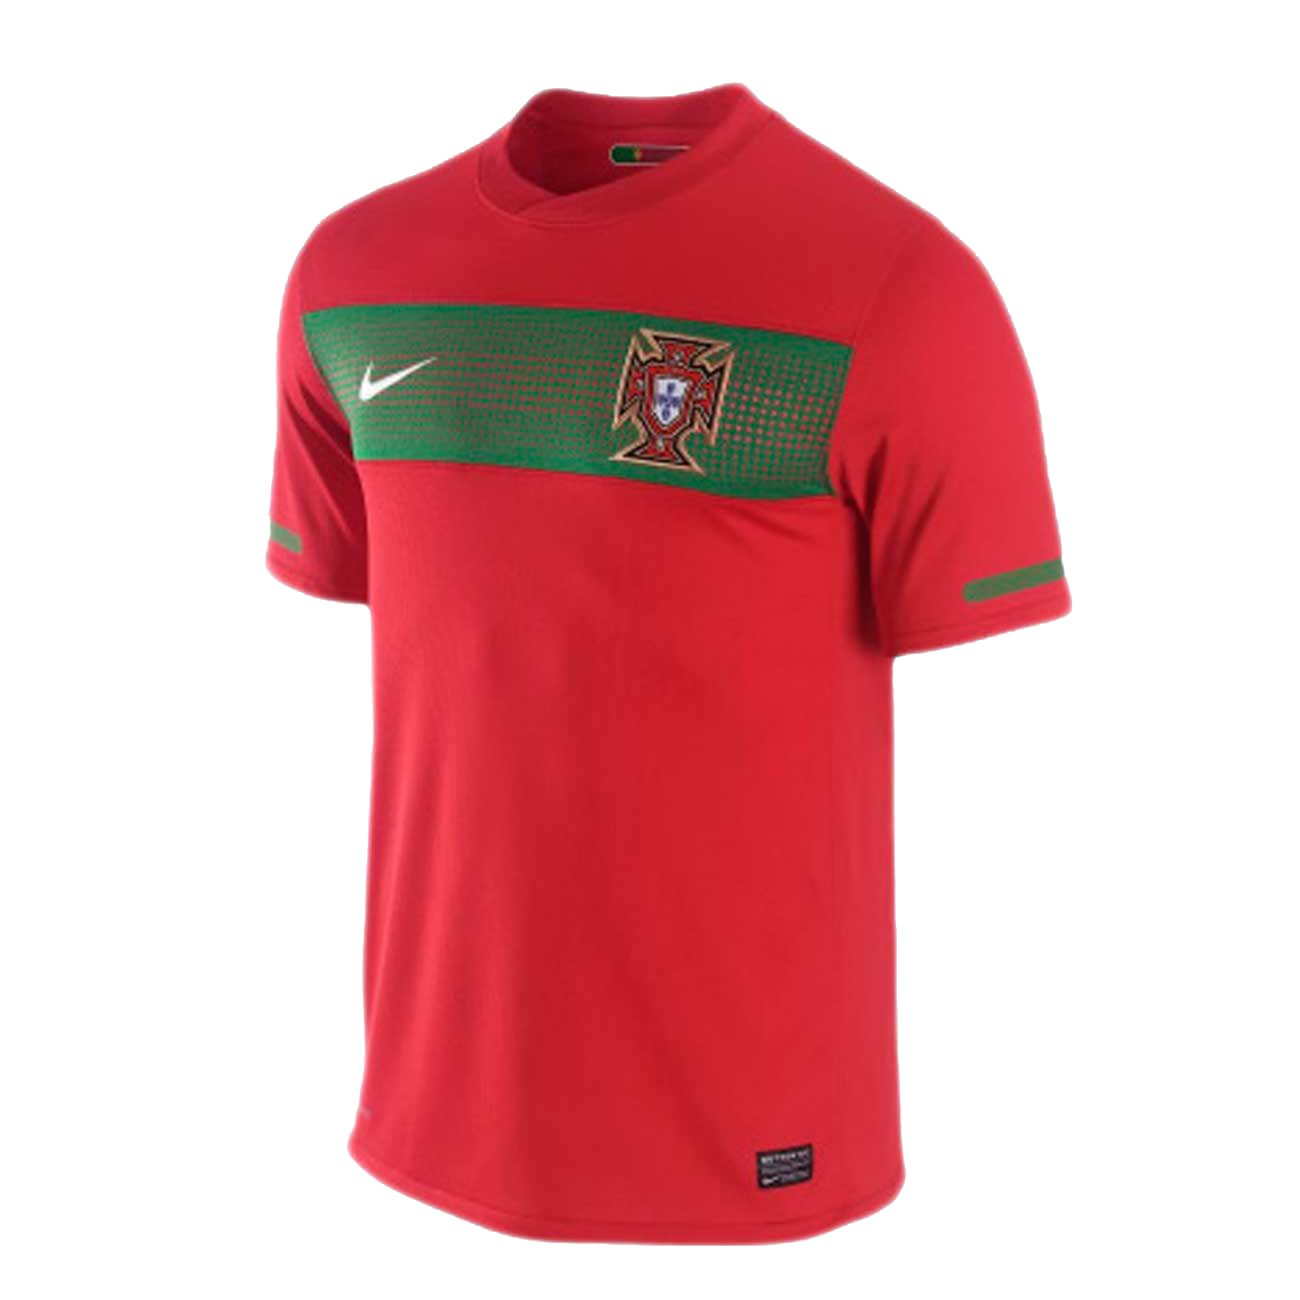 2010-11 Portugal Nike World Cup Home Shirt B003P3GMNSレッド XXL 50-52\